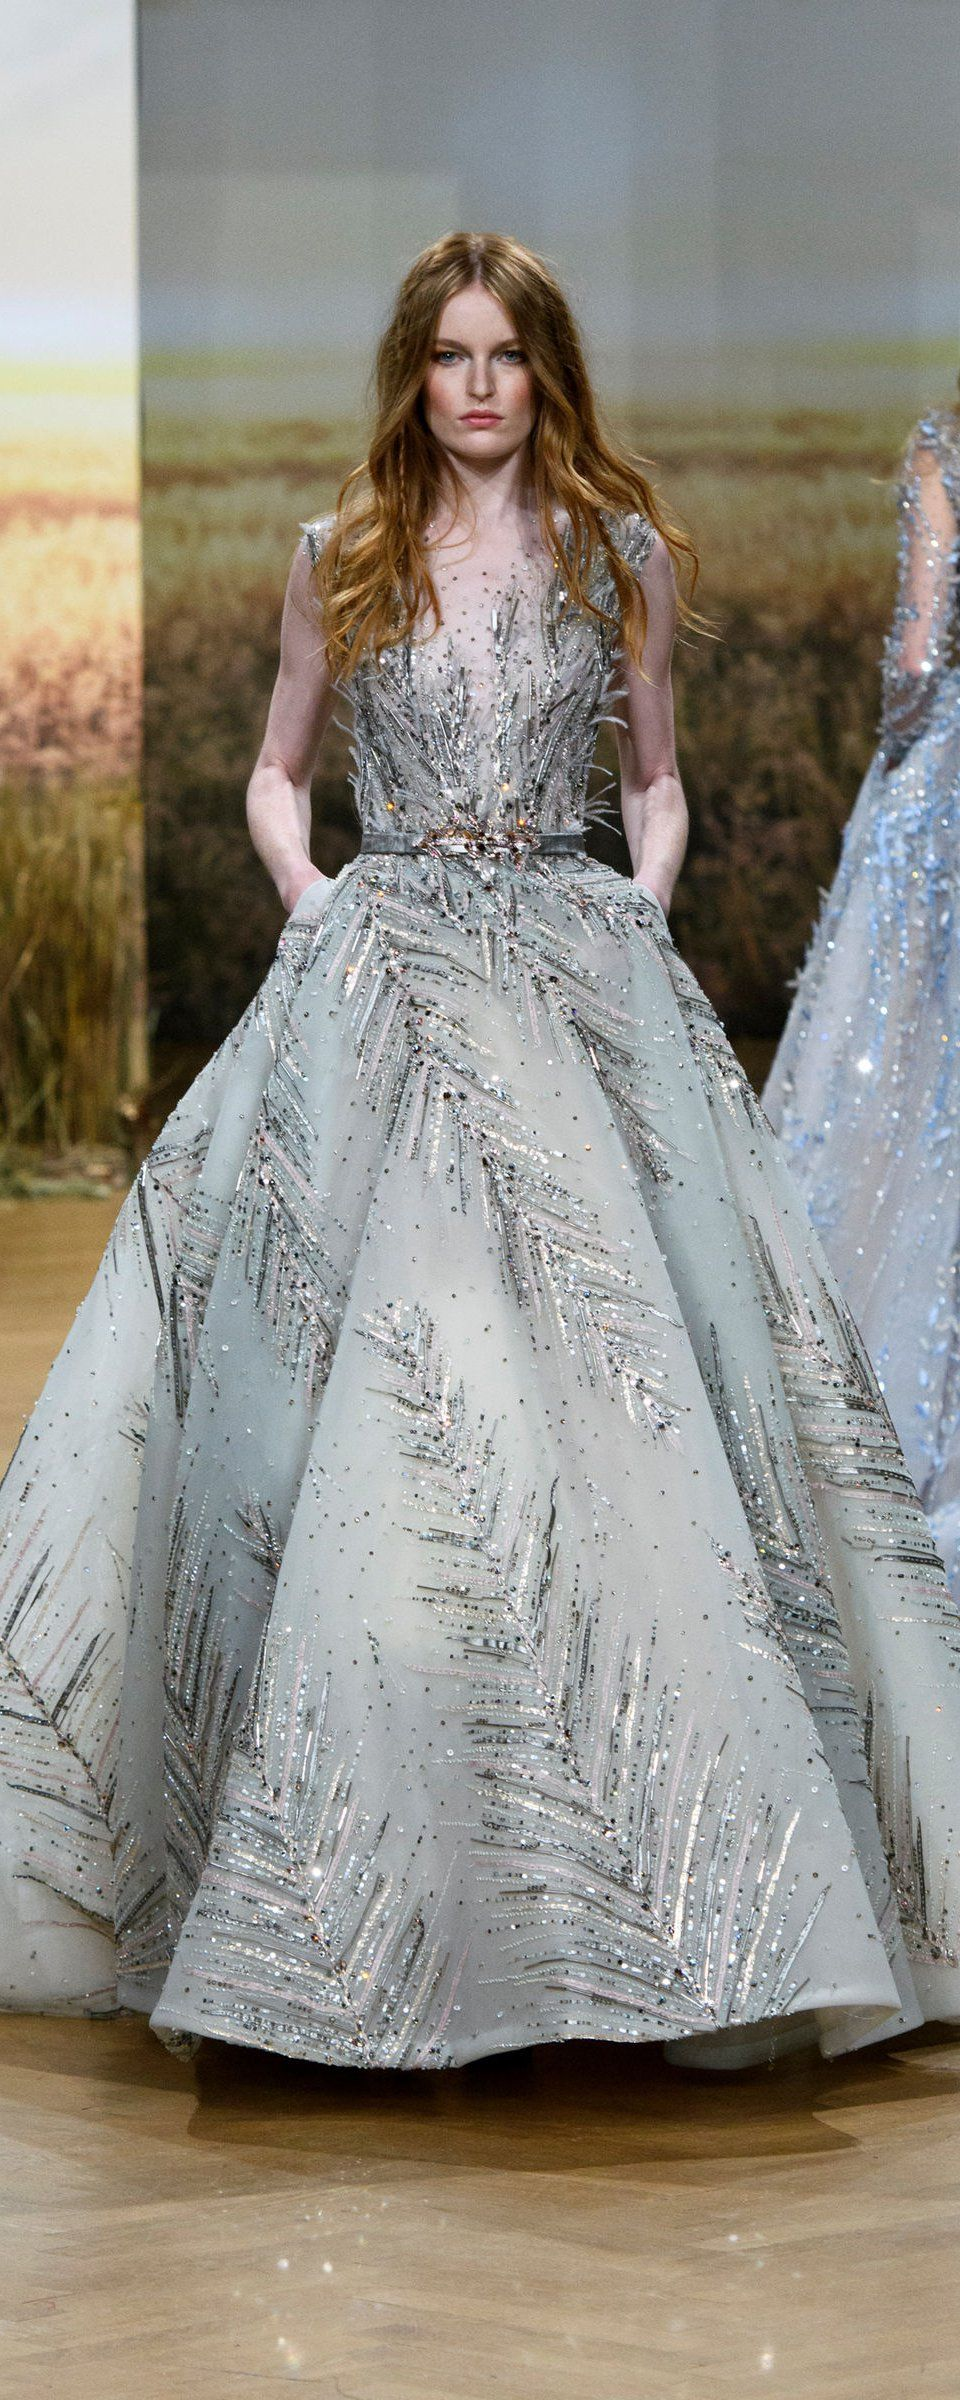 Ziad nakad springsummer couture gowns ball gowns and clothes